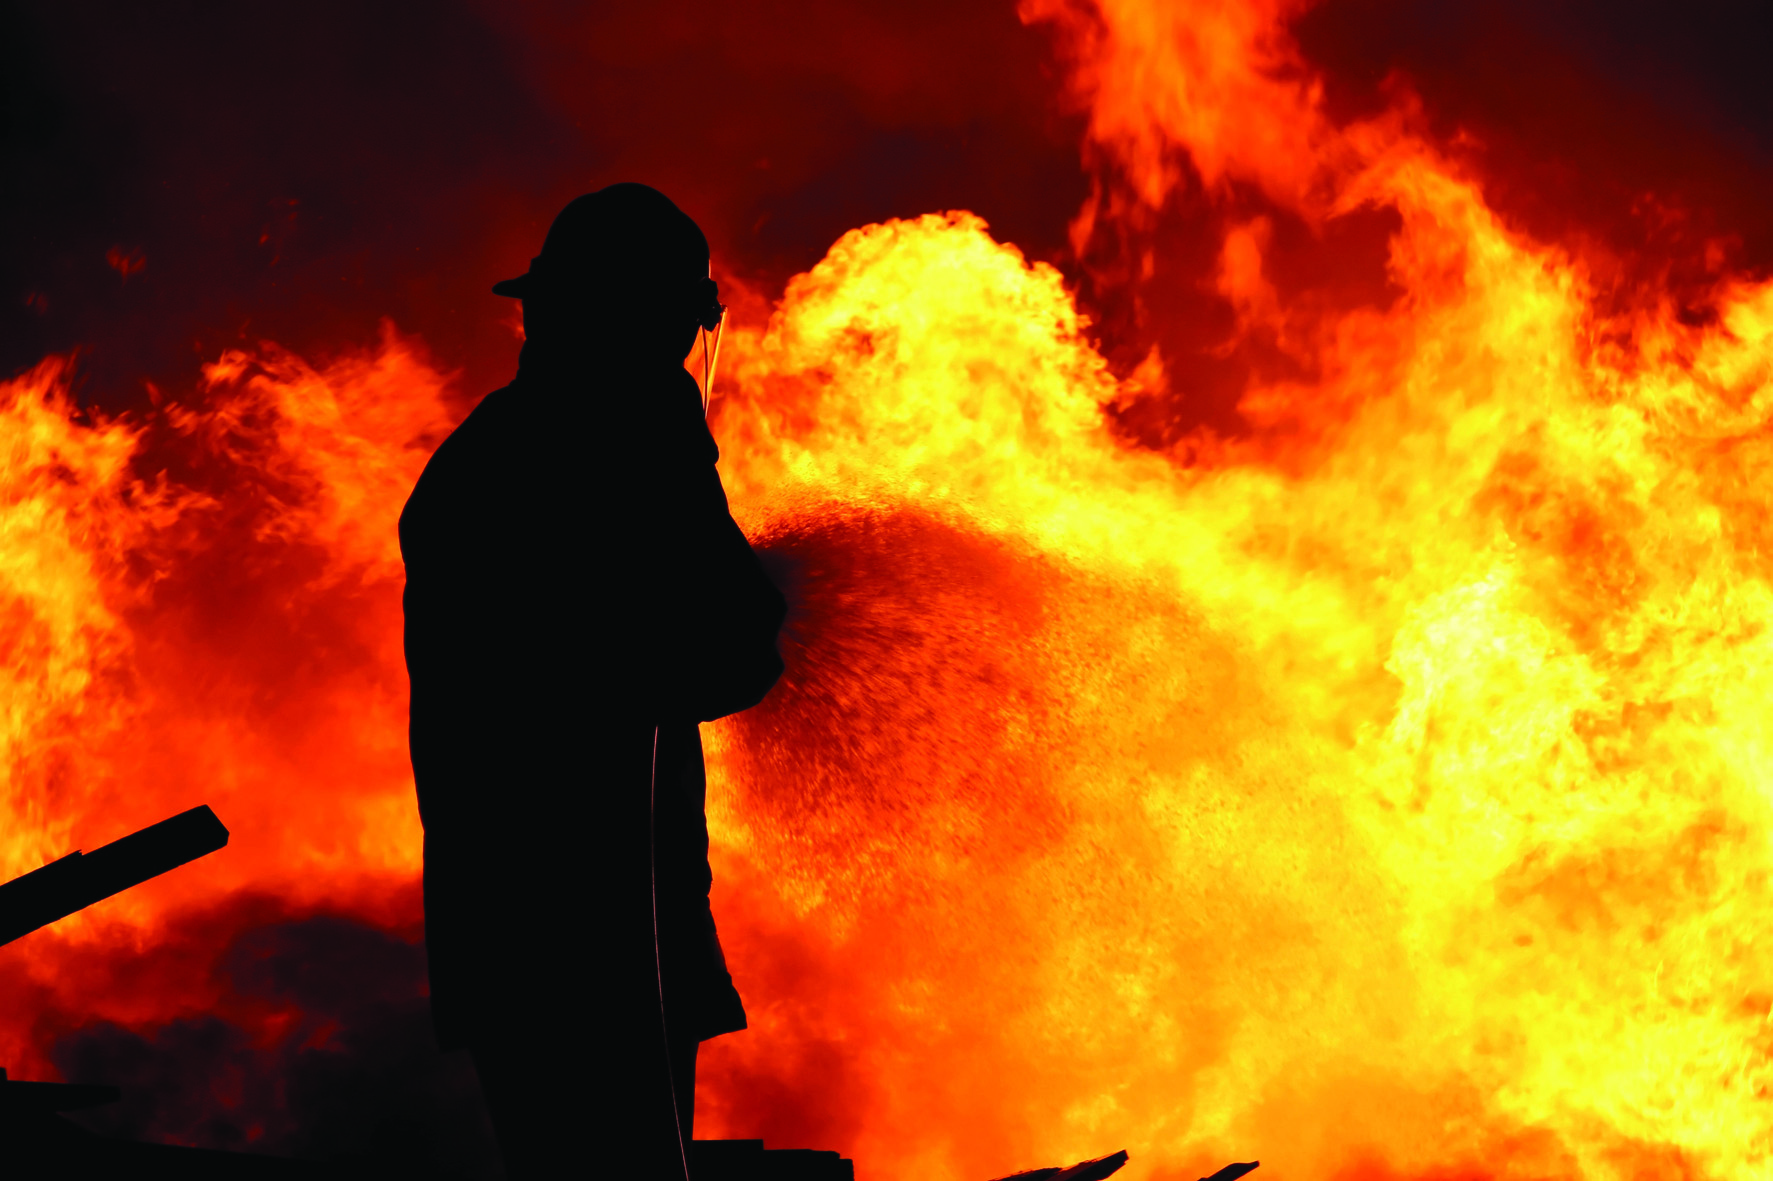 SOLAS (Safety of Life at Sea) firefighting communication requirements